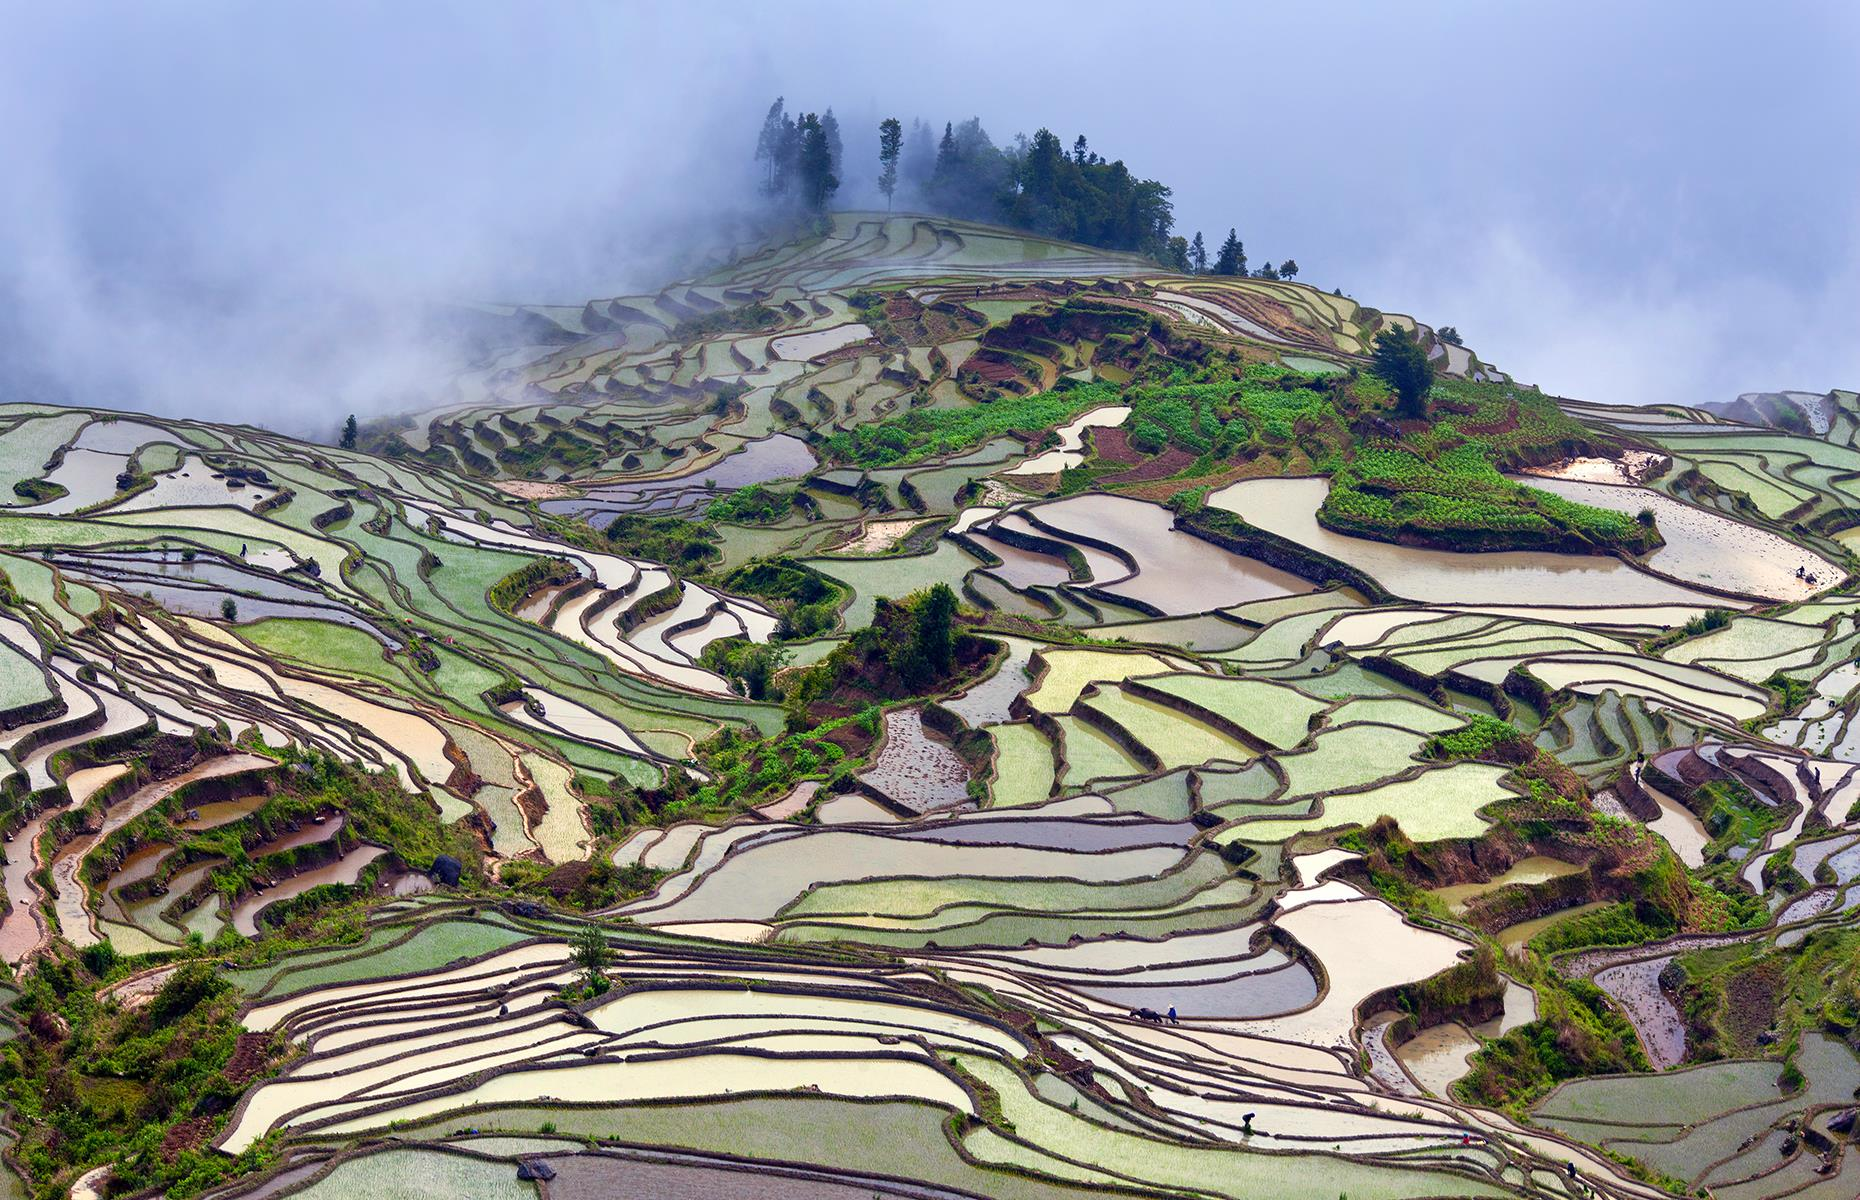 Slide 5 of 43: These vibrant rice terraces in China's Yuanyang County have been a UNESCOWorld Heritage Site since 2013 and no wonder. Built on red-soil mountains over 2,500 years ago and reaching up to 6,561 feet (1,999m)above sea level, the rice terraces fill with cascading spring water from the forests above, creating a unique scenery in shades of green and brown.